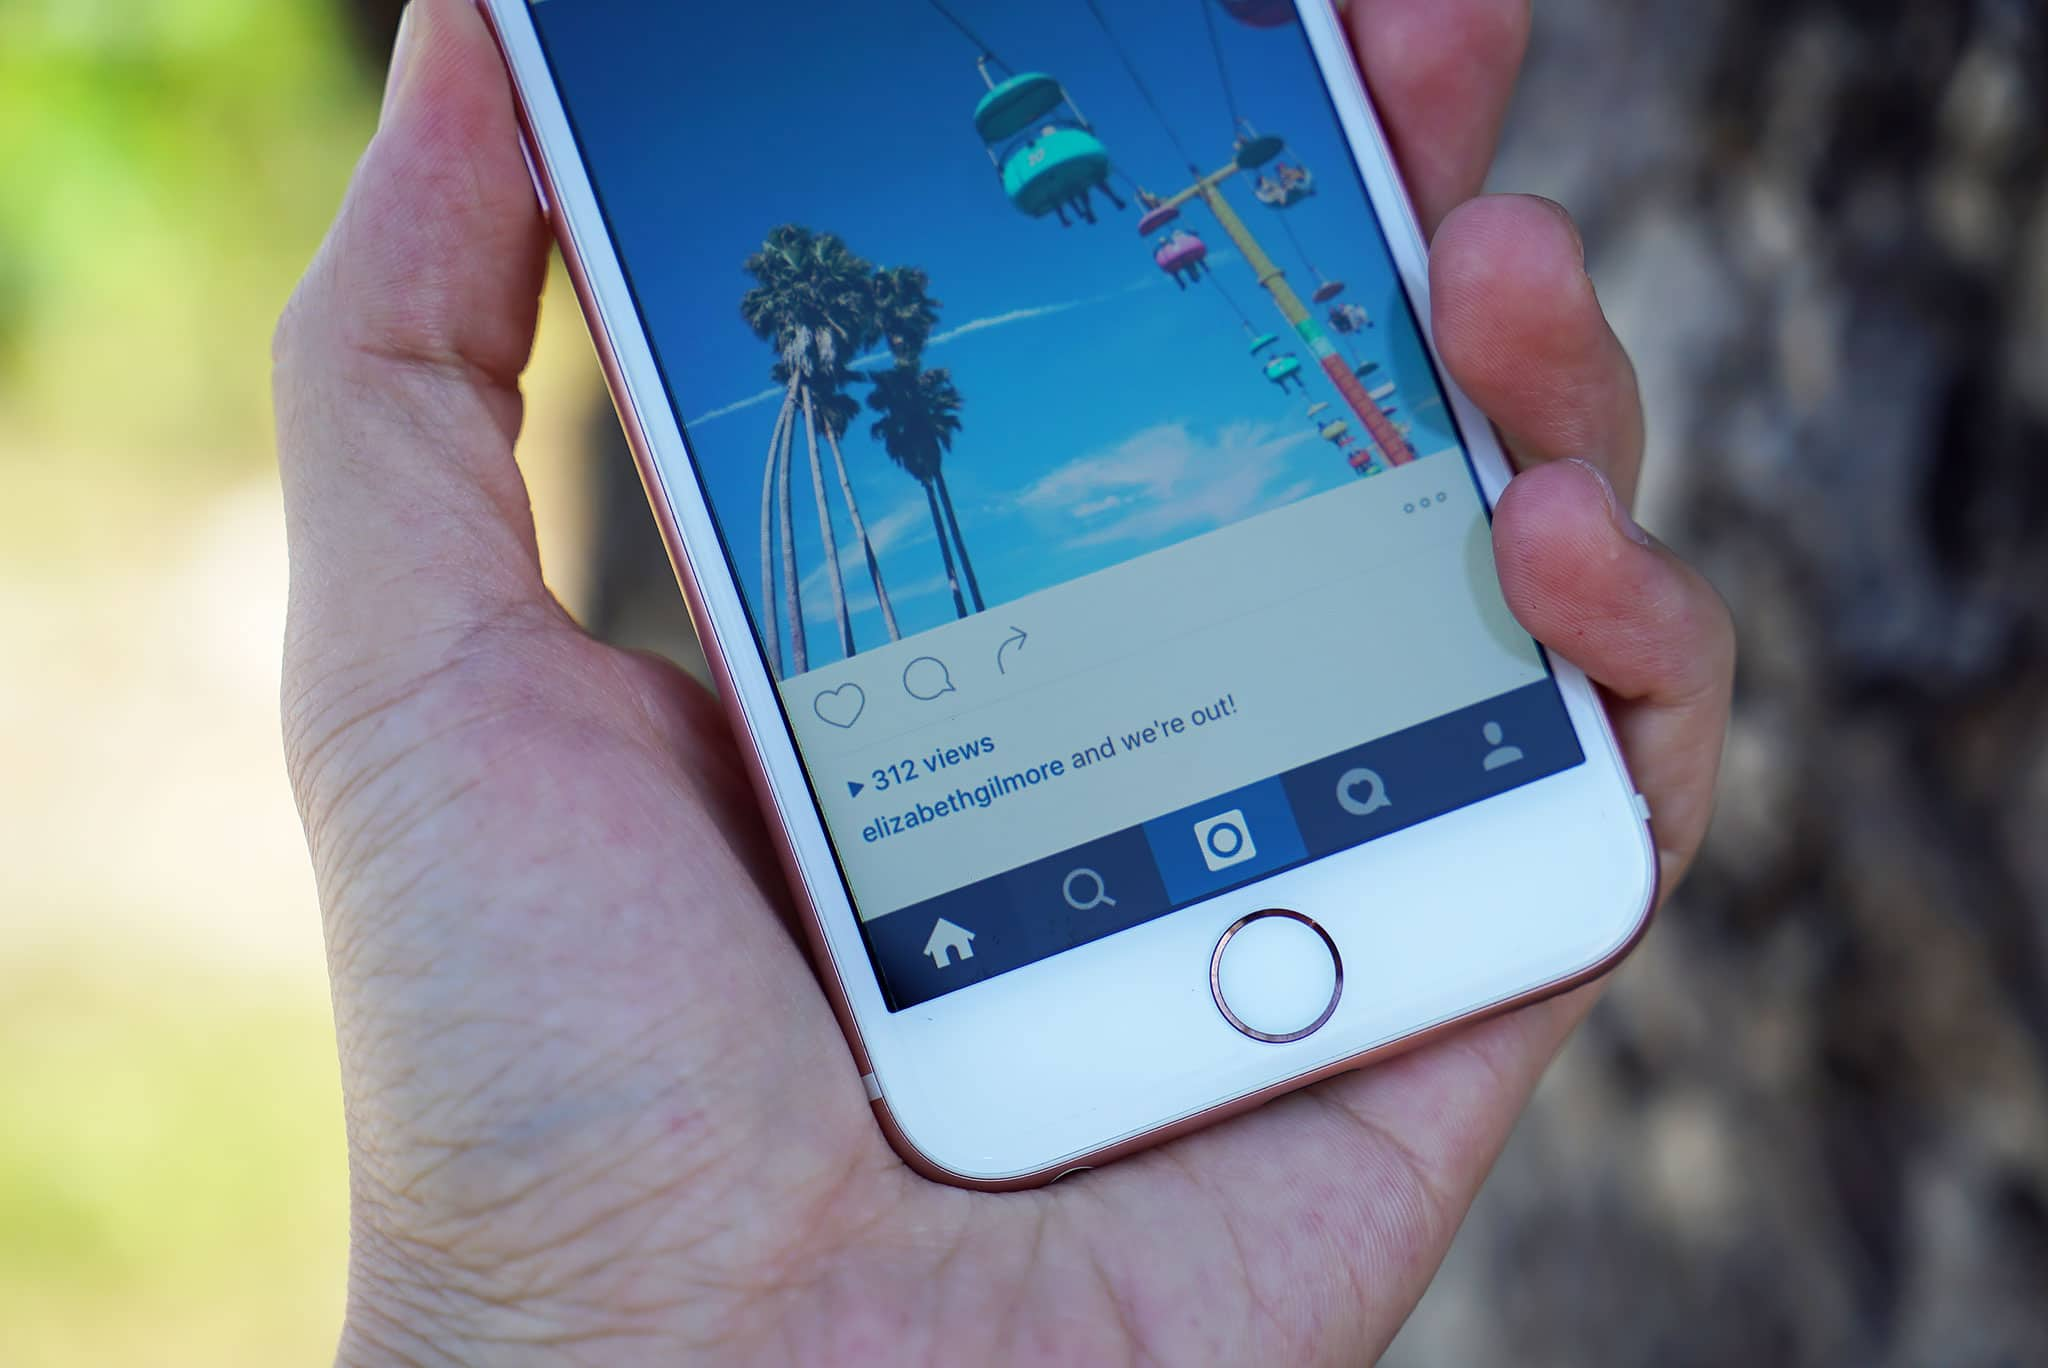 Instagram adds view counter to videos